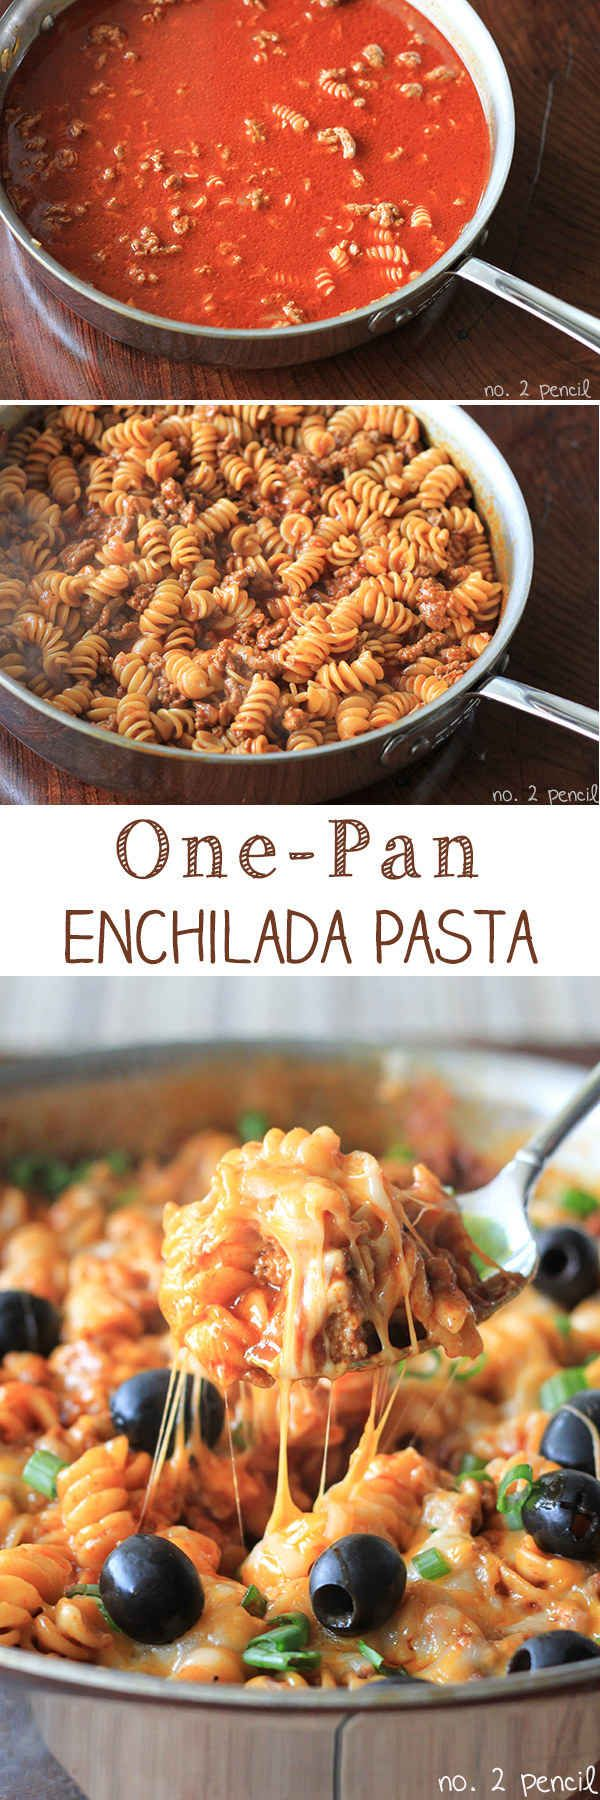 One-Pan Enchilada Pasta | 21 Simple One-Pot Pastas